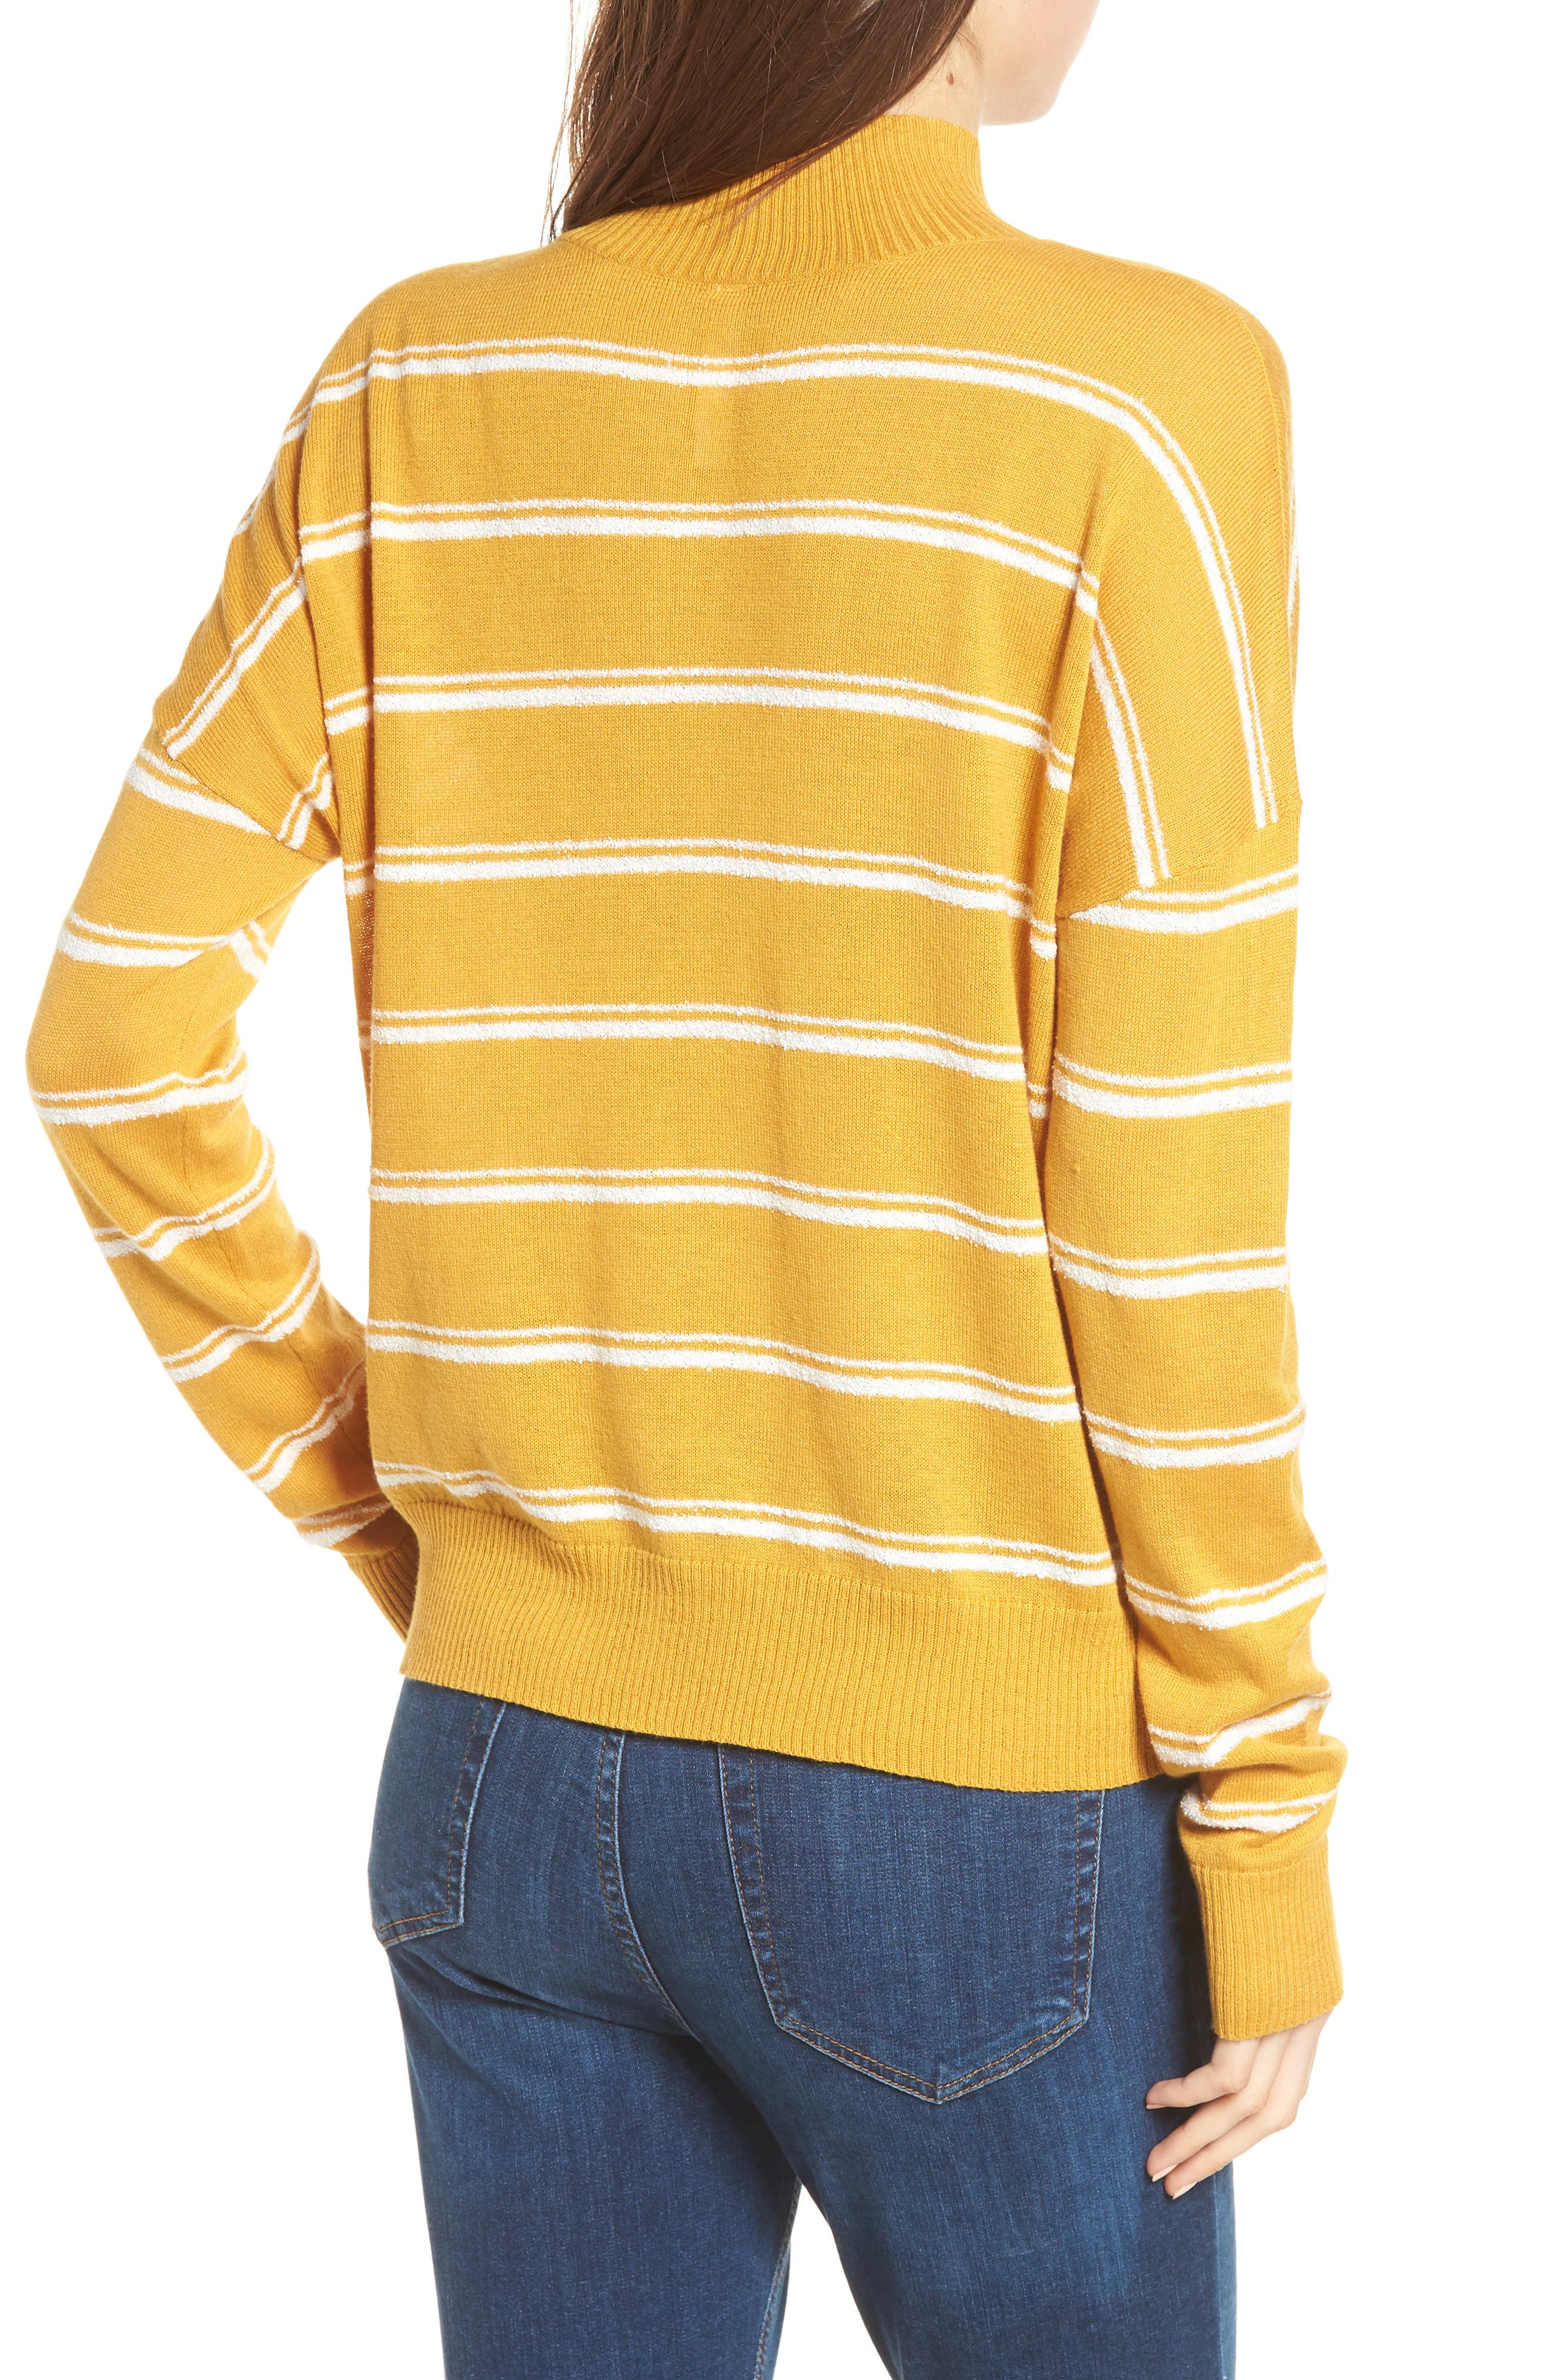 Armed Stripe Sweater,                             Alternate thumbnail 2, color,                             779